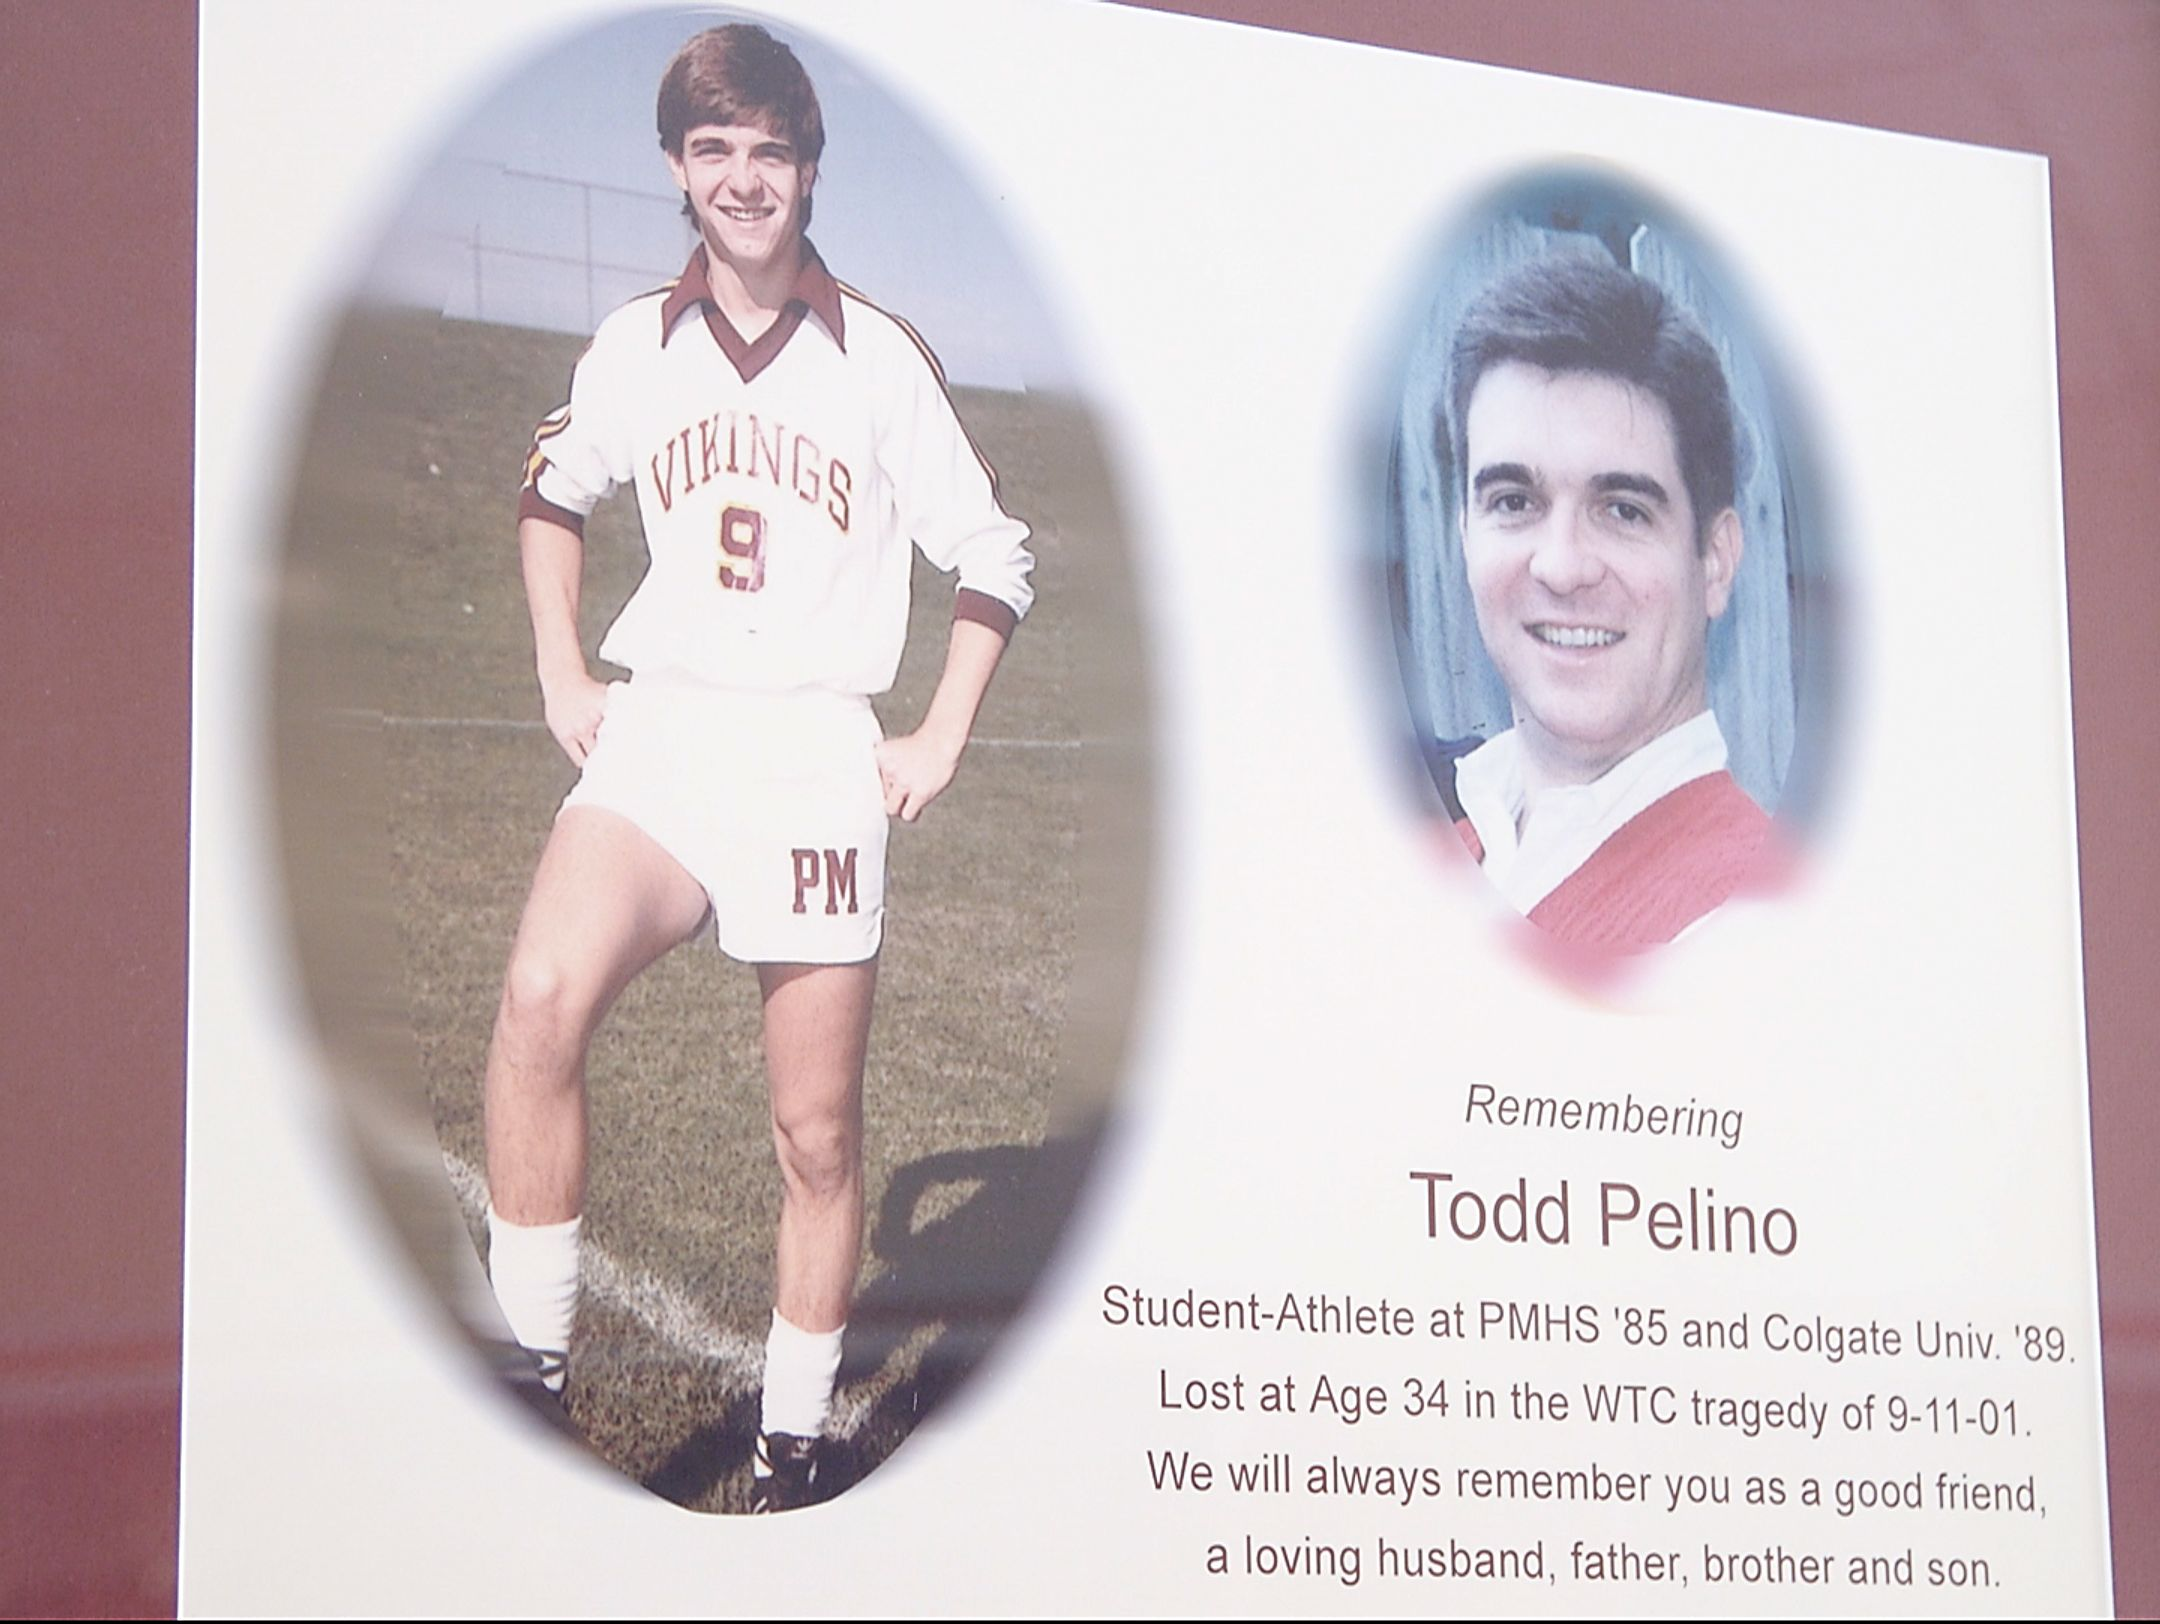 Todd Pelino Memorial at Pittsford Mendon High School. Pelino was killed in the Sept. 11 attacks on the World Trade Center.